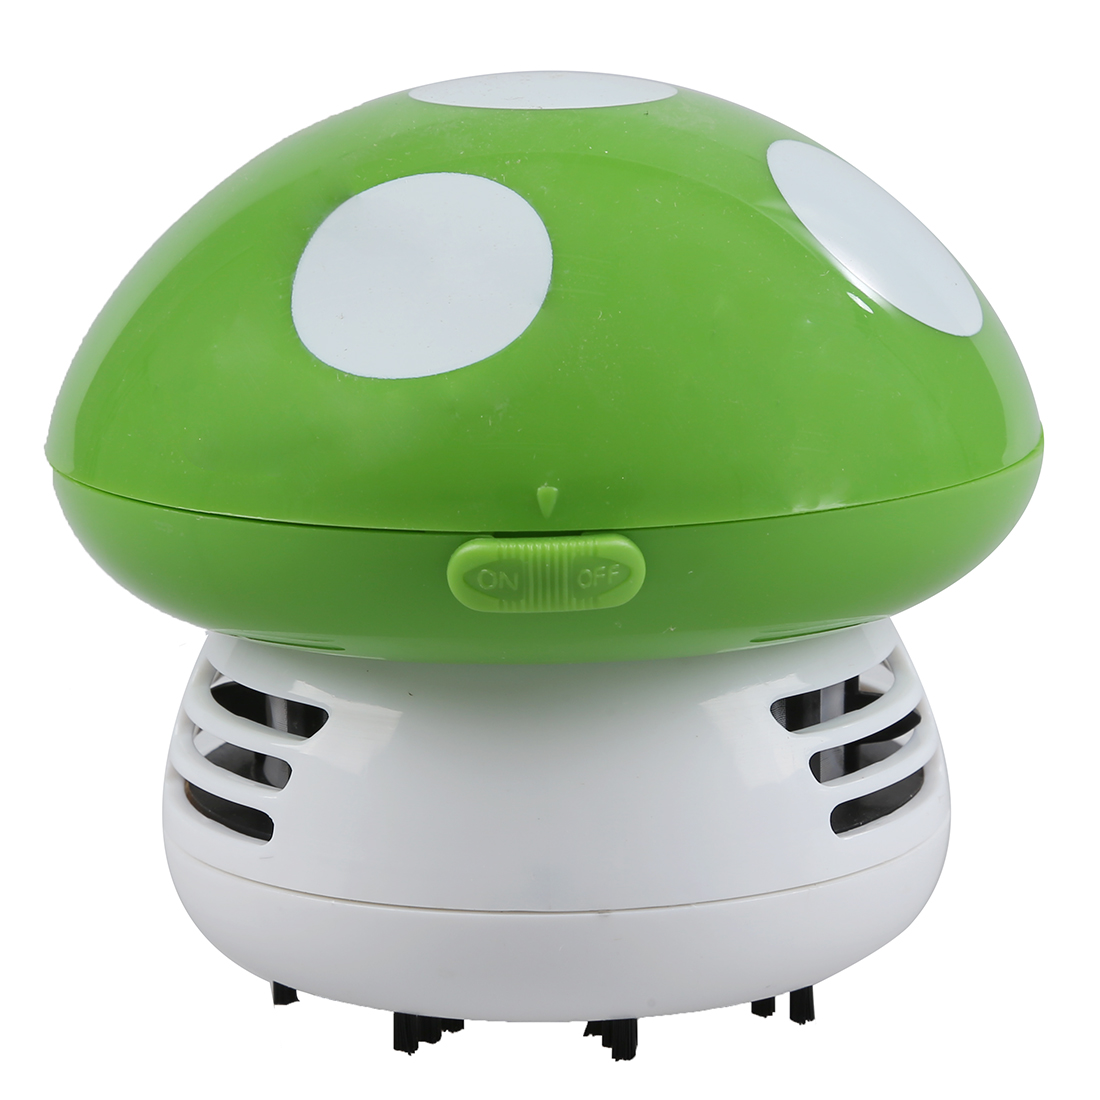 New Home Handheld Mushroom Shaped Mini Vacuum Cleaner Car Laptop keyboard Desktop Dust cleaner-green игра настольная мир хобби нет слов учим английский